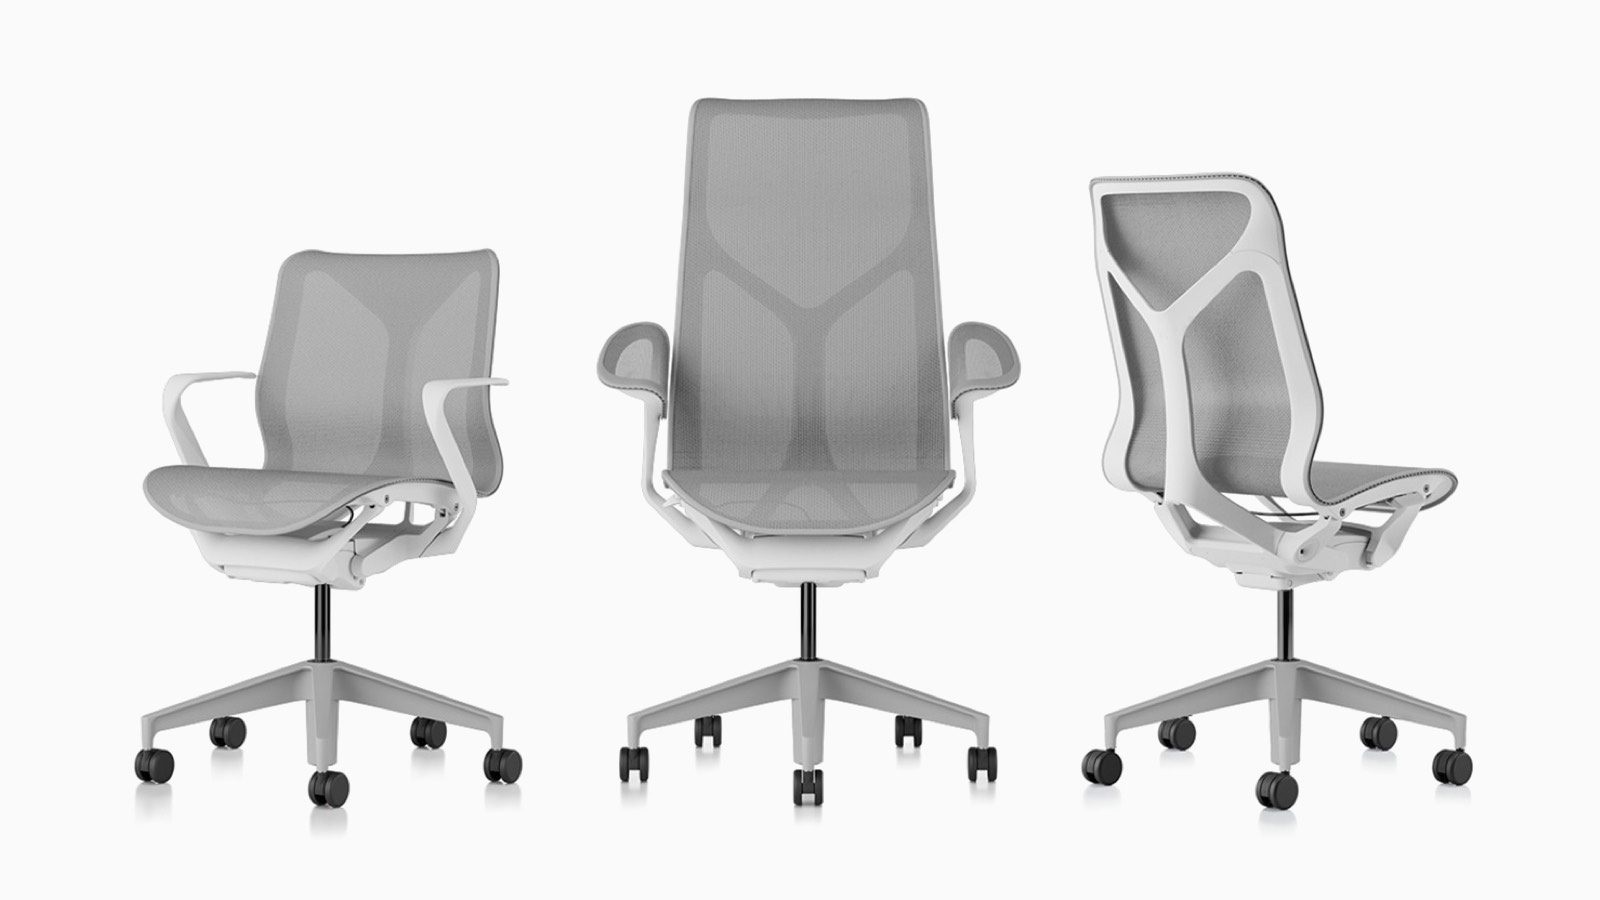 Low-back, high-back, and mid-back Cosm ergonomic desk chairs with bases and frames in Studio White and suspension materials in Mineral light grey.